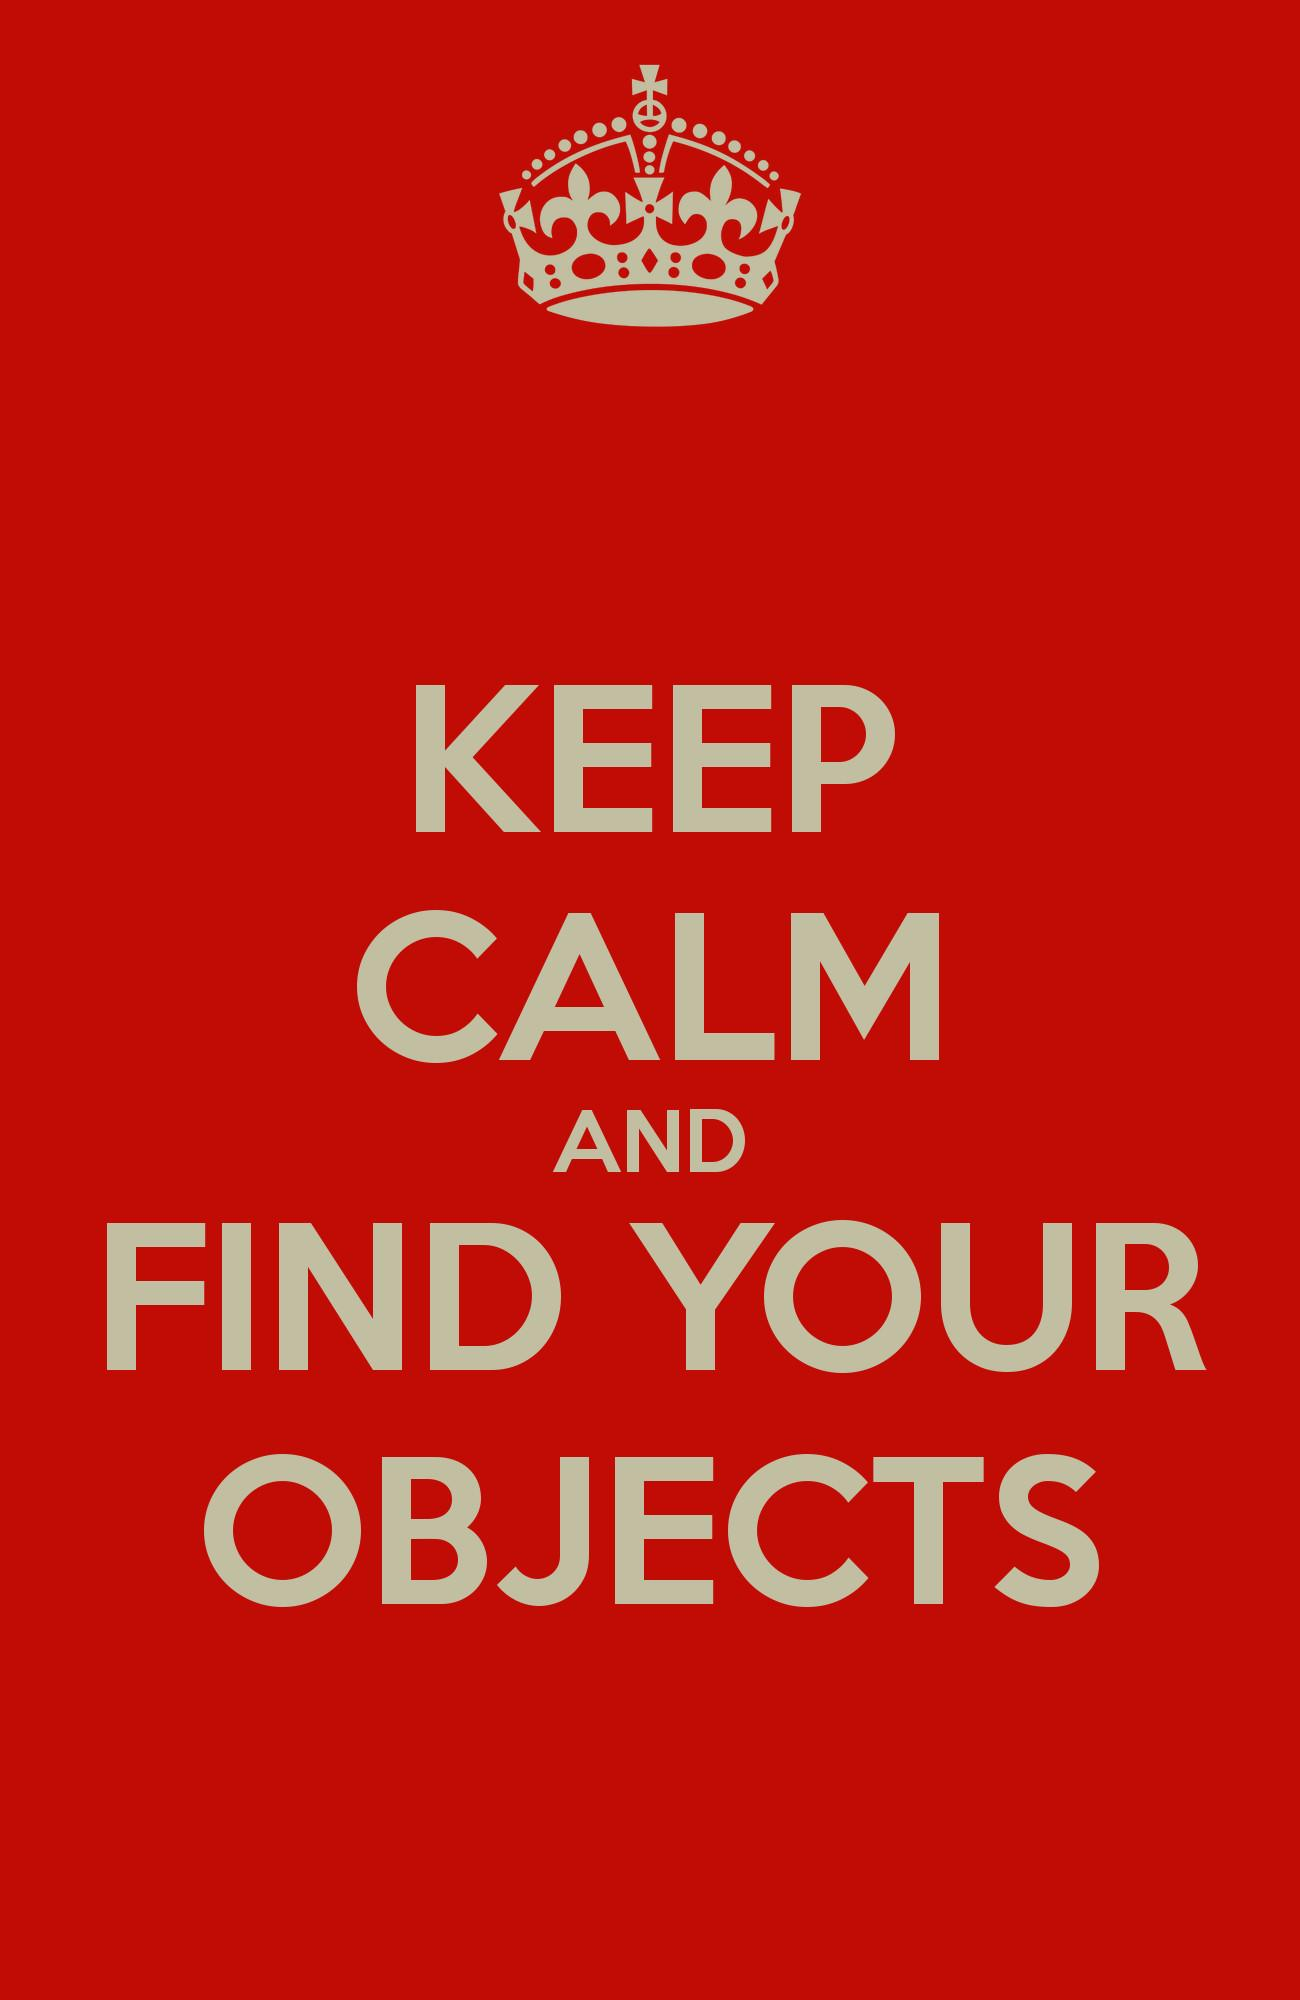 Keep Calm Find Your Objects Poster Jose